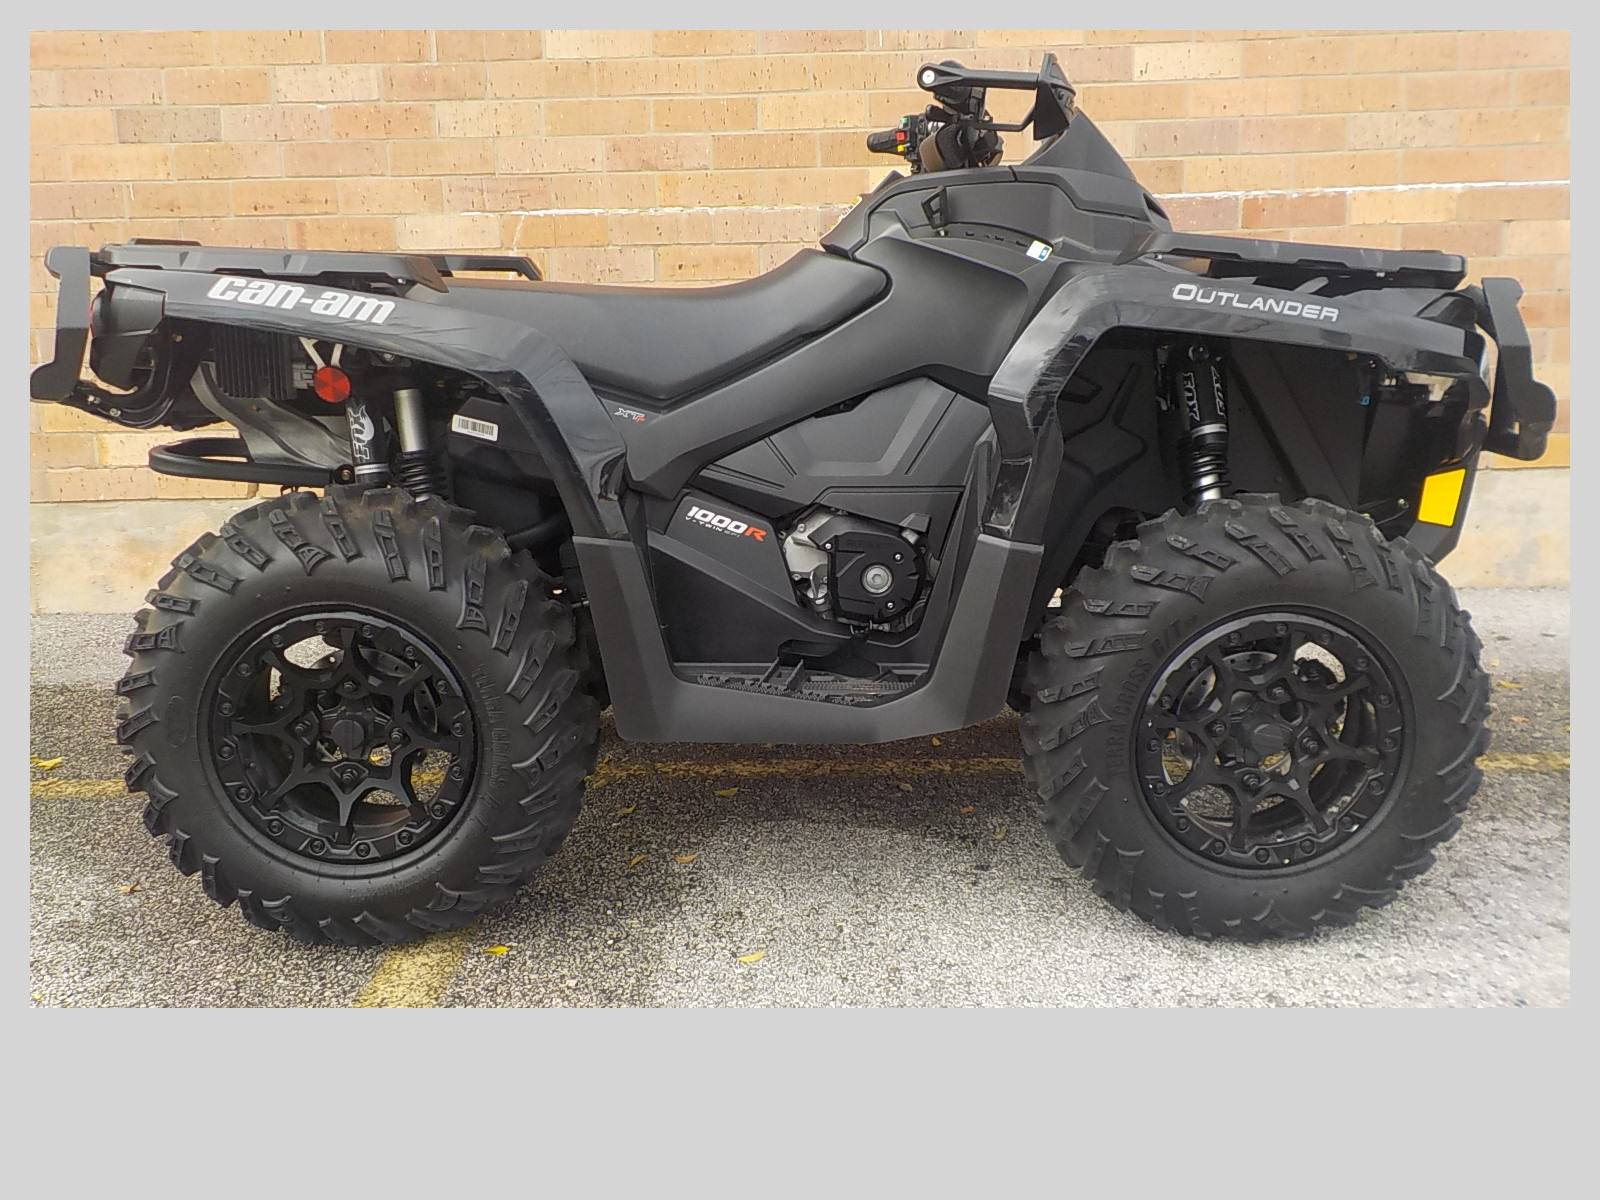 2018 Can-Am Outlander XT-P 1000R in San Antonio, Texas - Photo 1